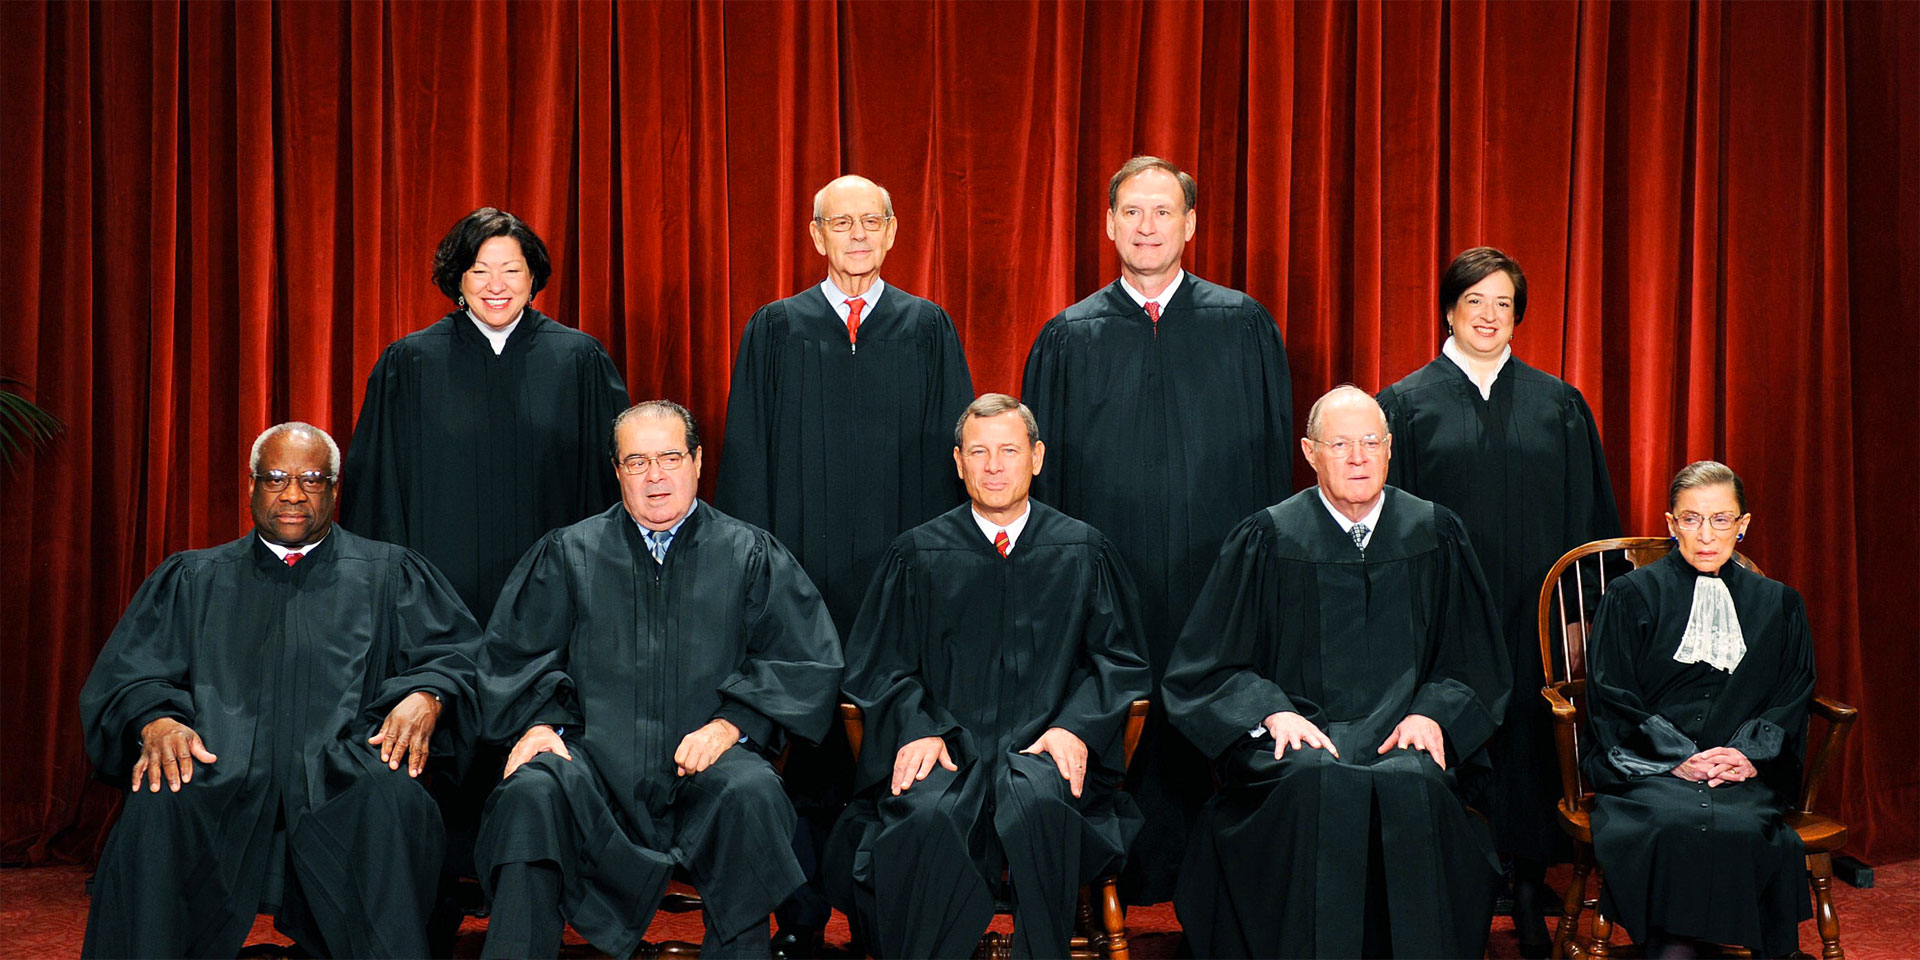 The Supreme Court of the United States, including the late Antonin Scalia (there are currently 8 justices until a 9th is confirmed).